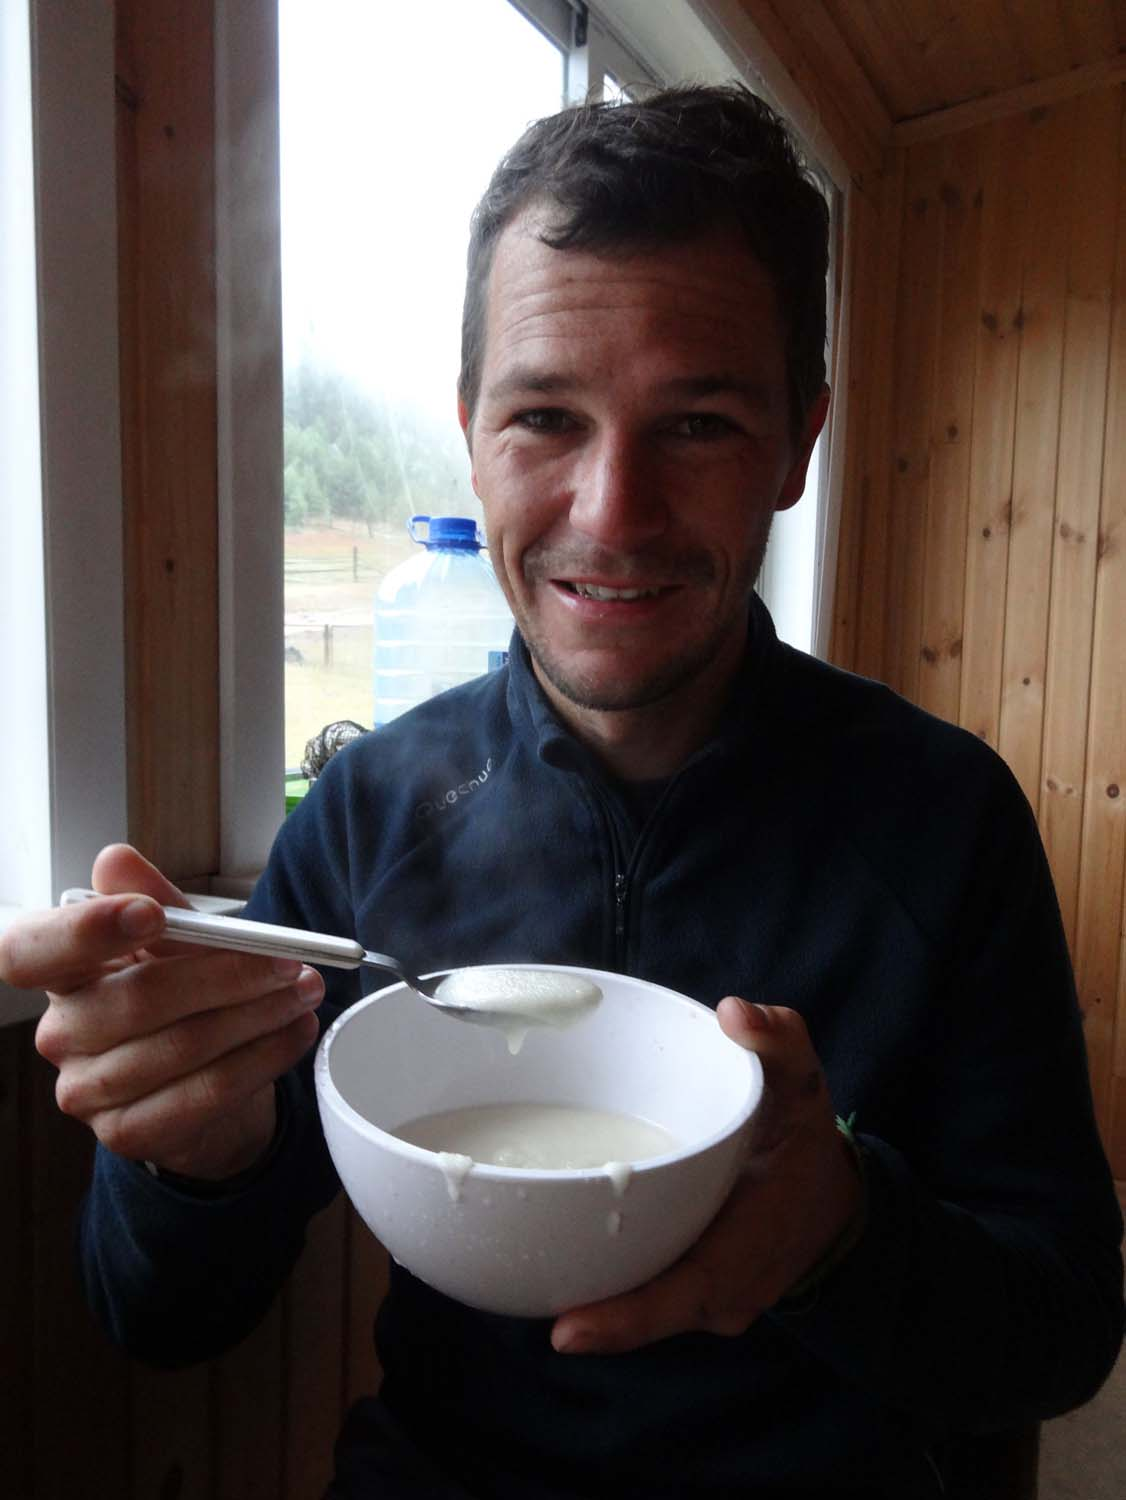 Jon eats porridge (kasha) for the first time in 10 years and decides it's not so bad after all...